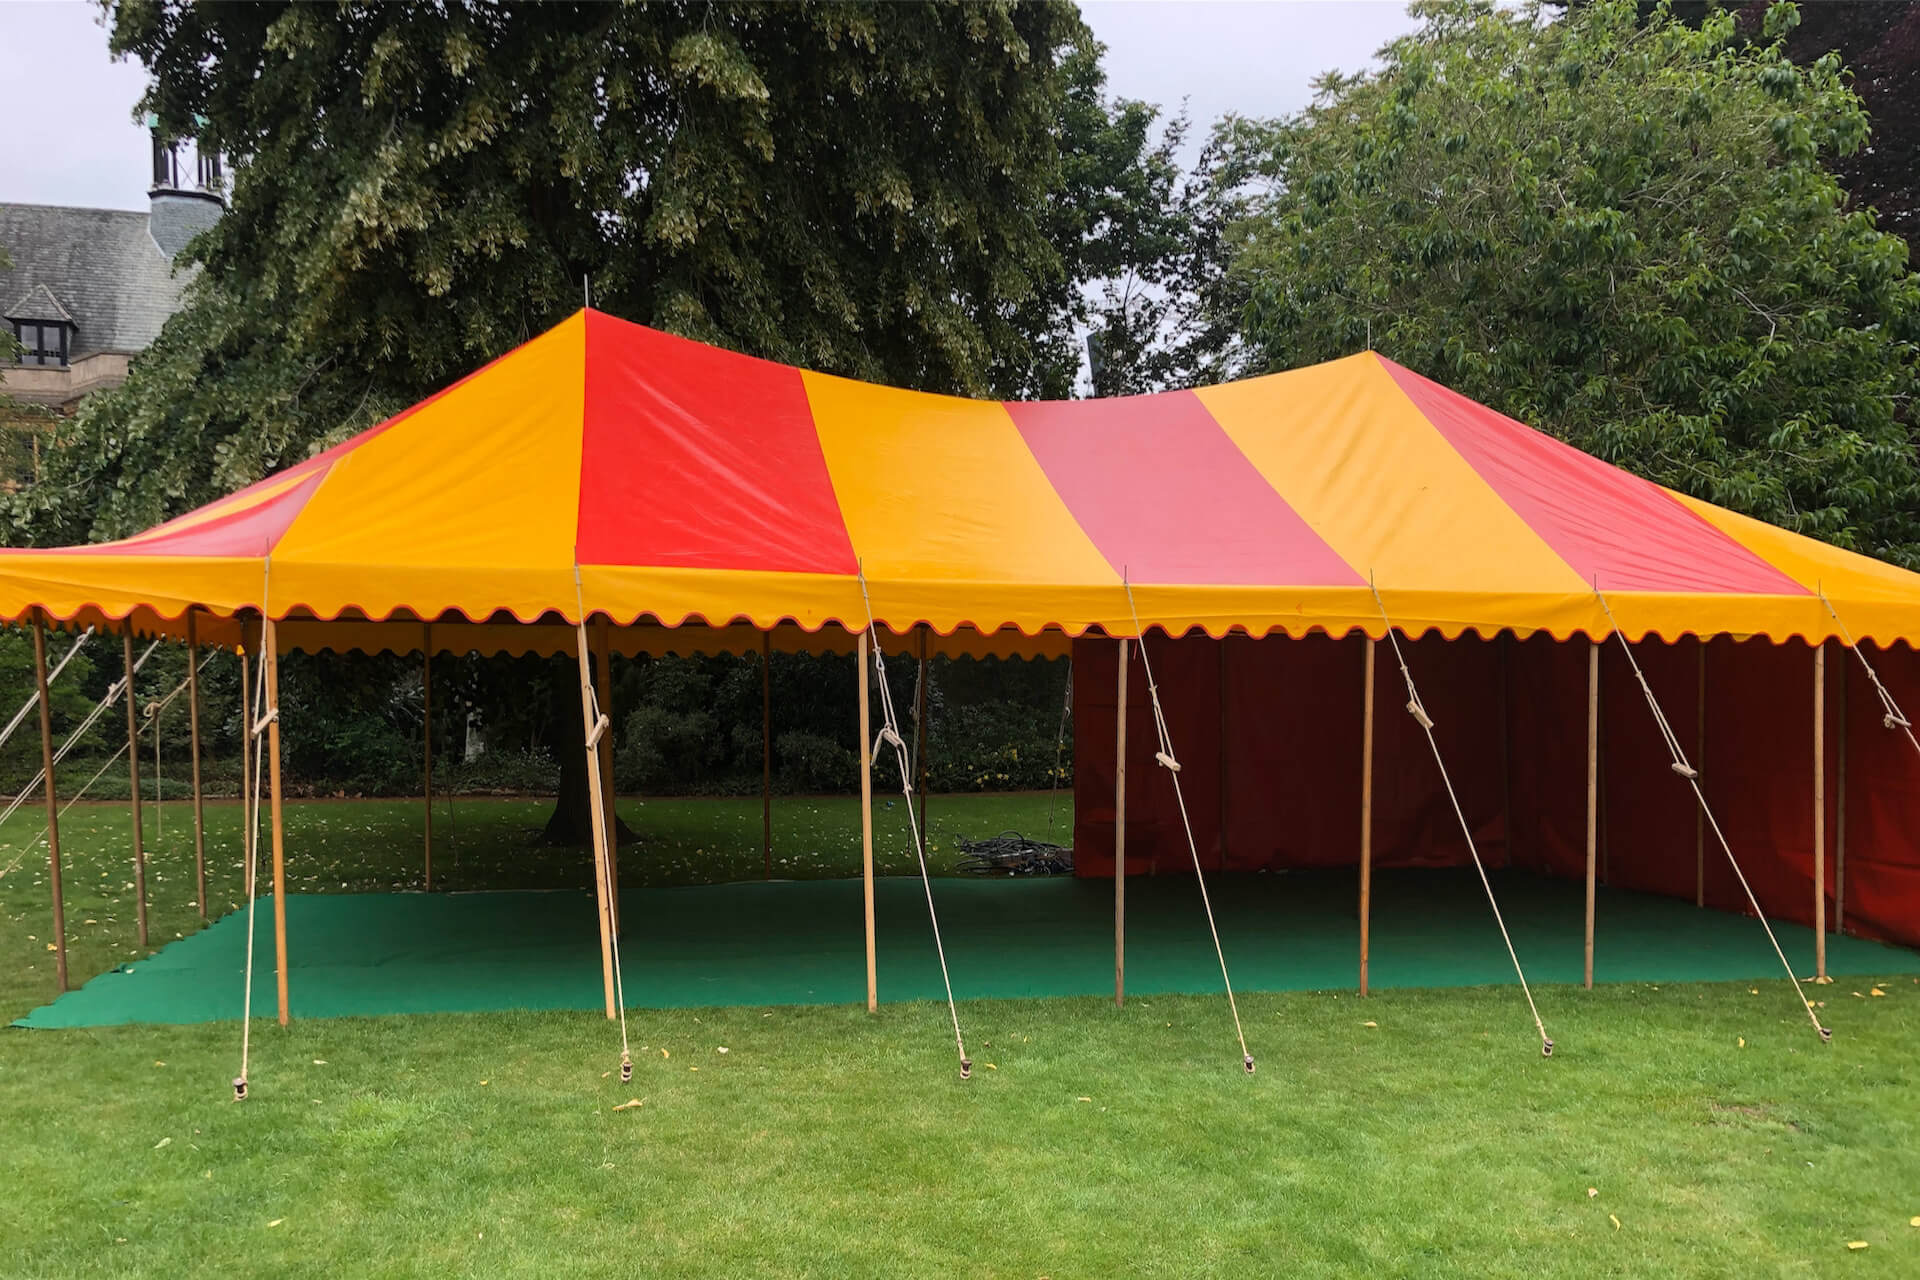 12m x 6m rectangular red and yellow tent rental Devon